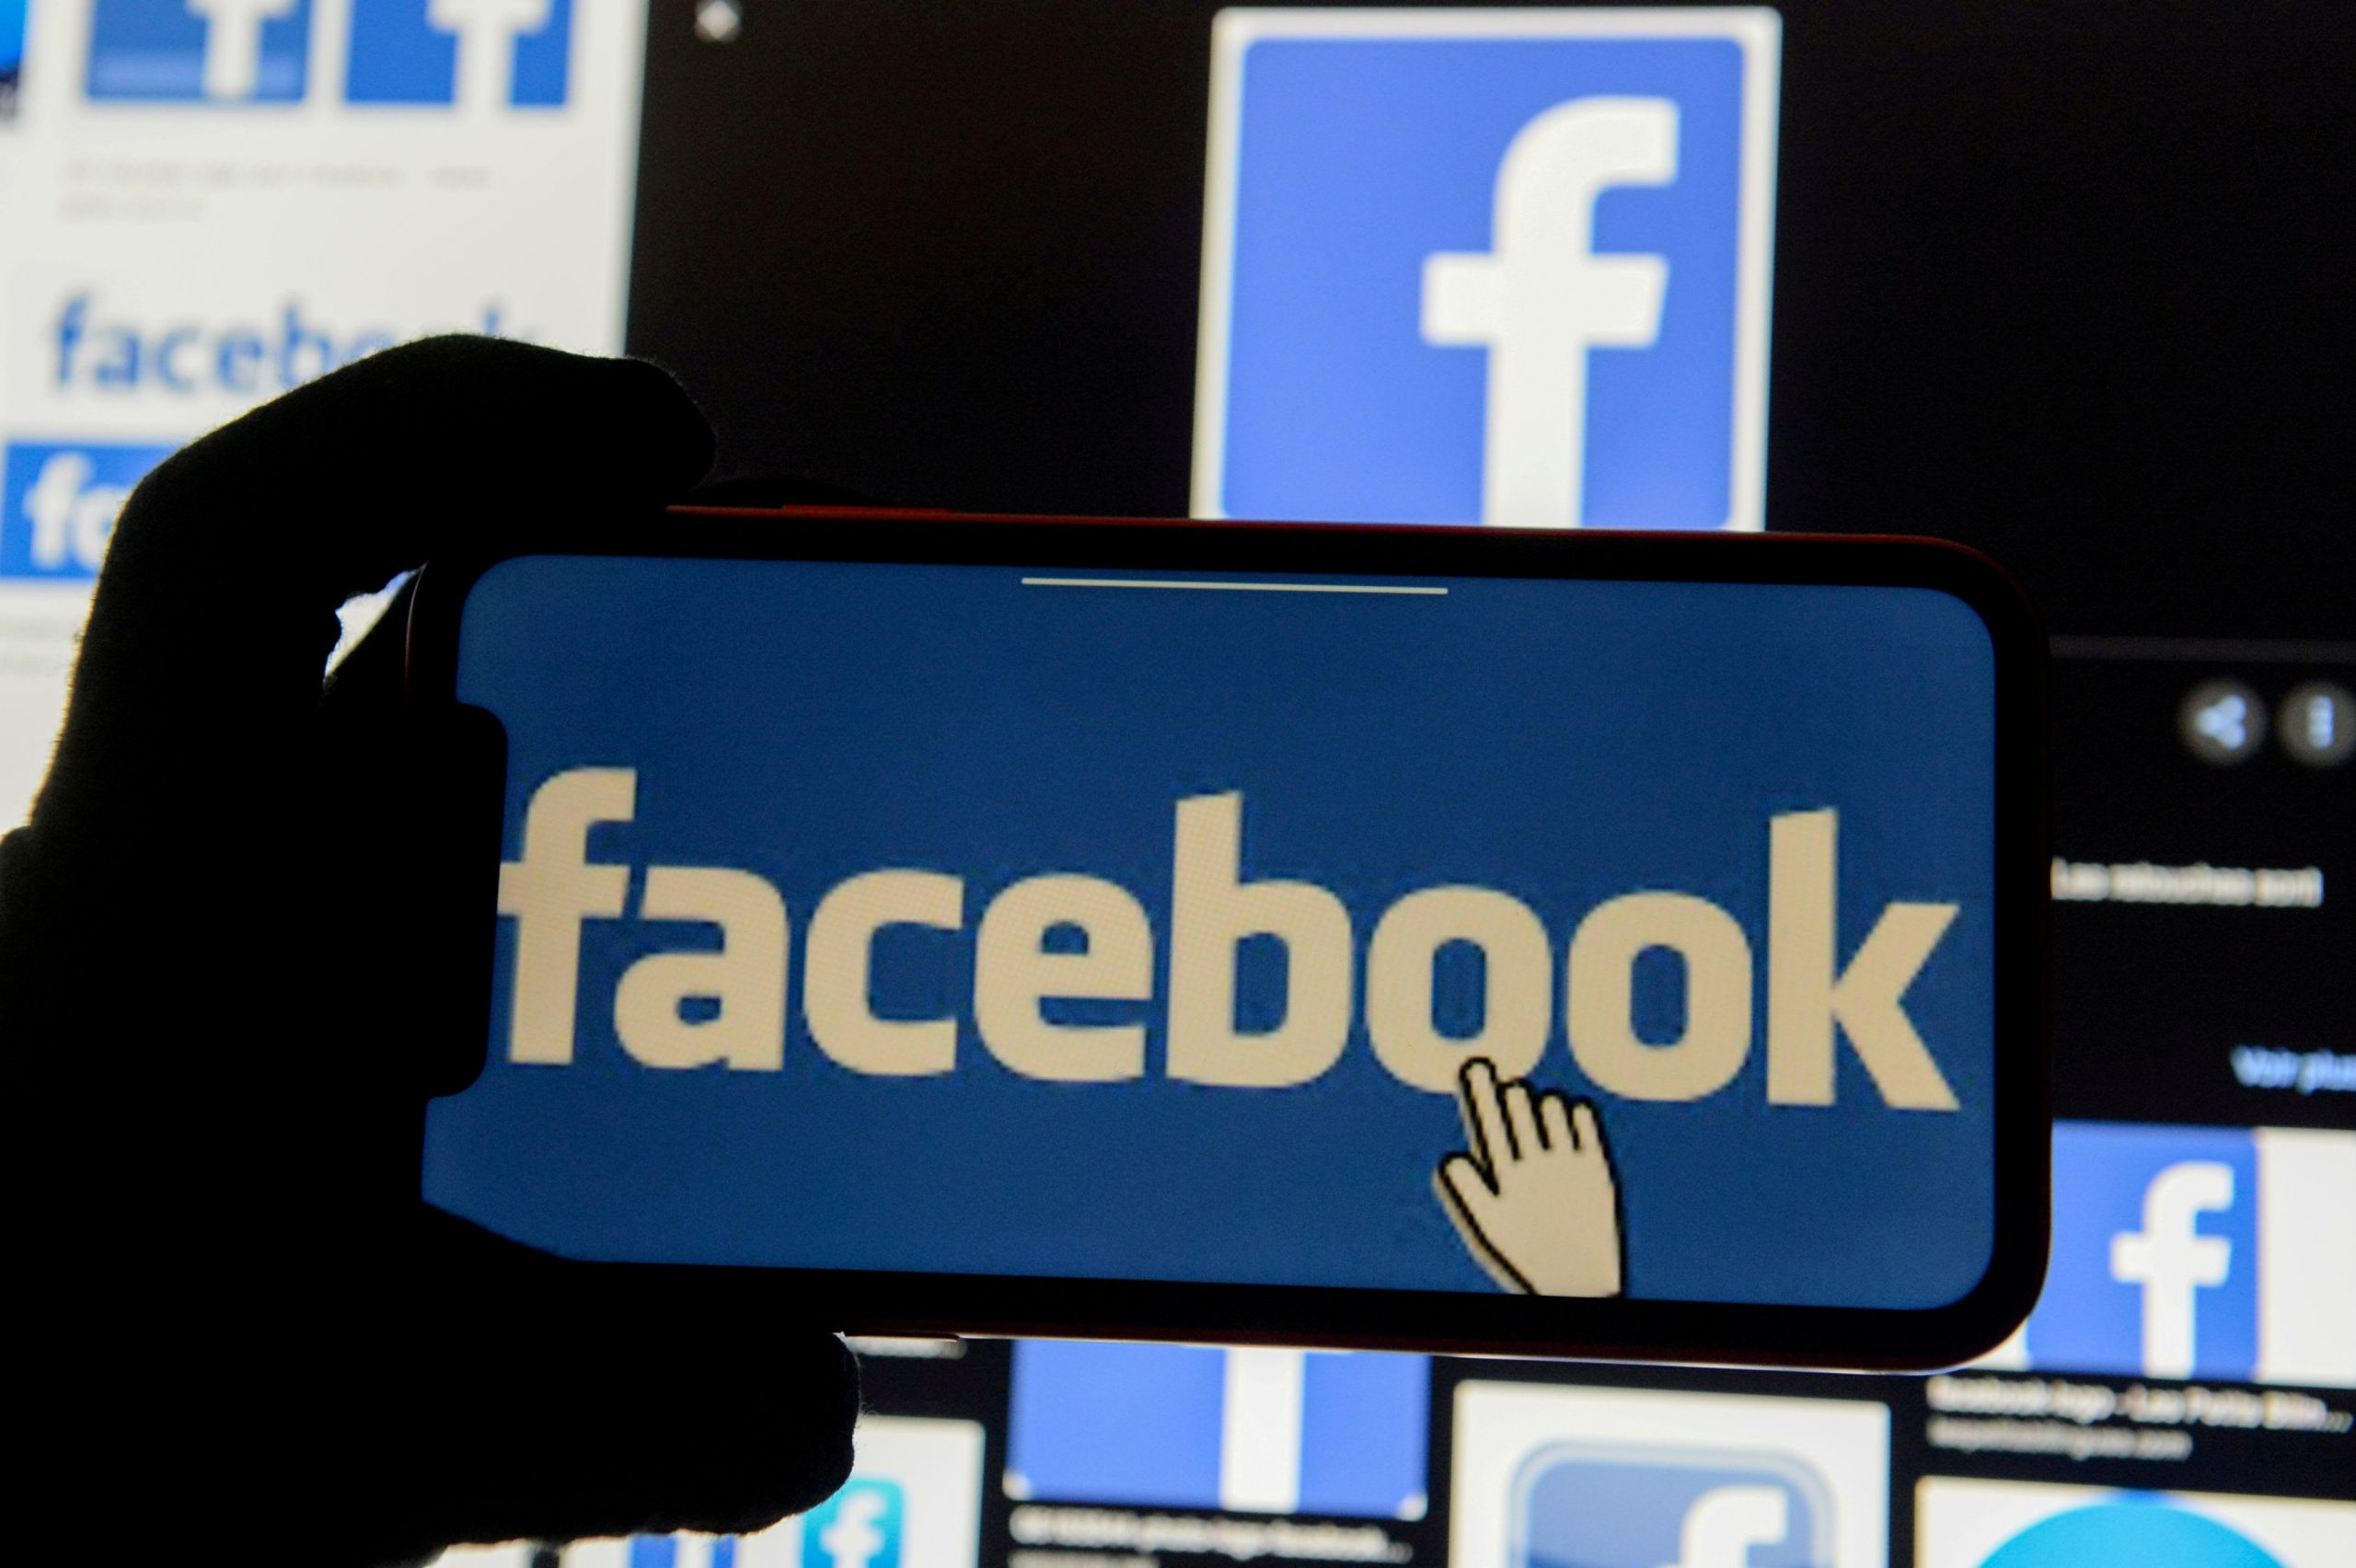 Facebook to reimburse some advertisers after miscalculating effectiveness data